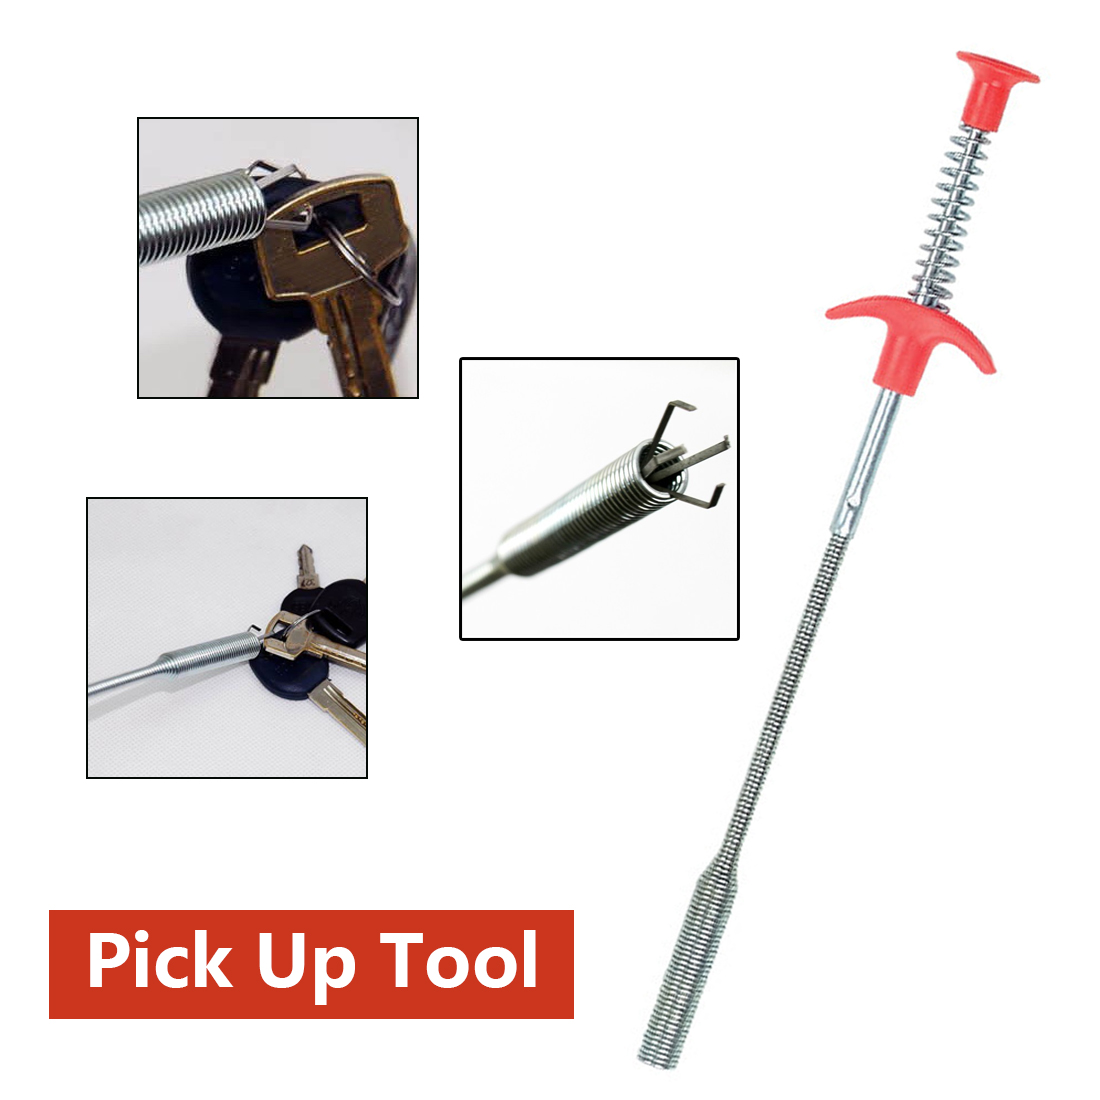 85CM Long Reach Four Claws Flexible Pick Up Tool Spring Grip Narrow Bend Curve Grabber For Picking Up Sewer Hair Dredging Device